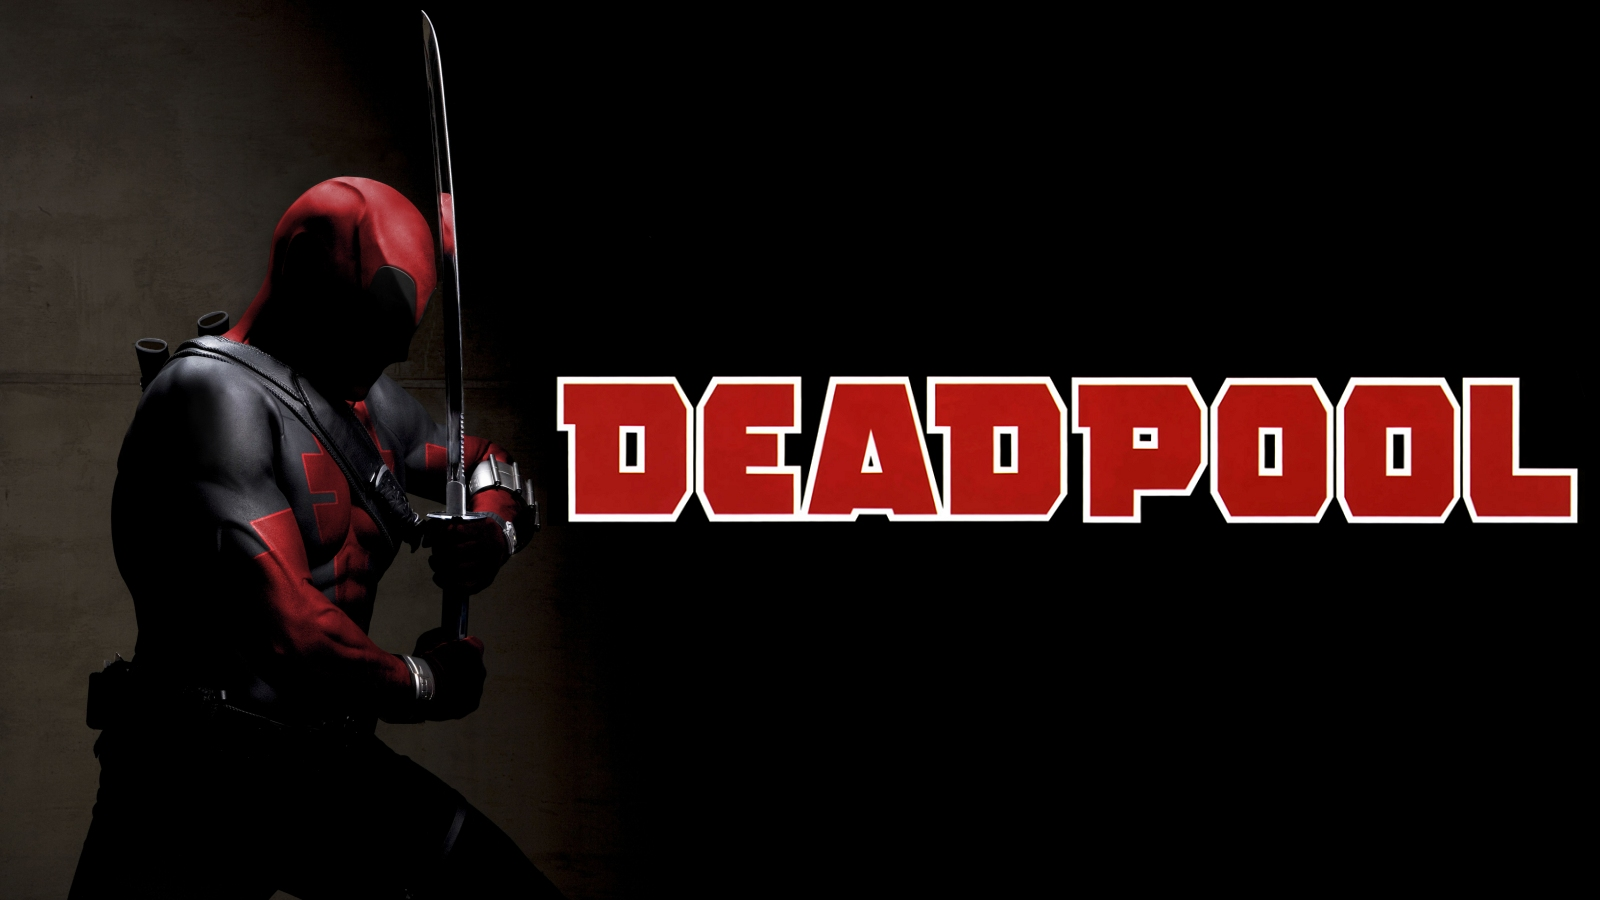 55 Deadpool HD Wallpapers  Background Images  Wallpaper